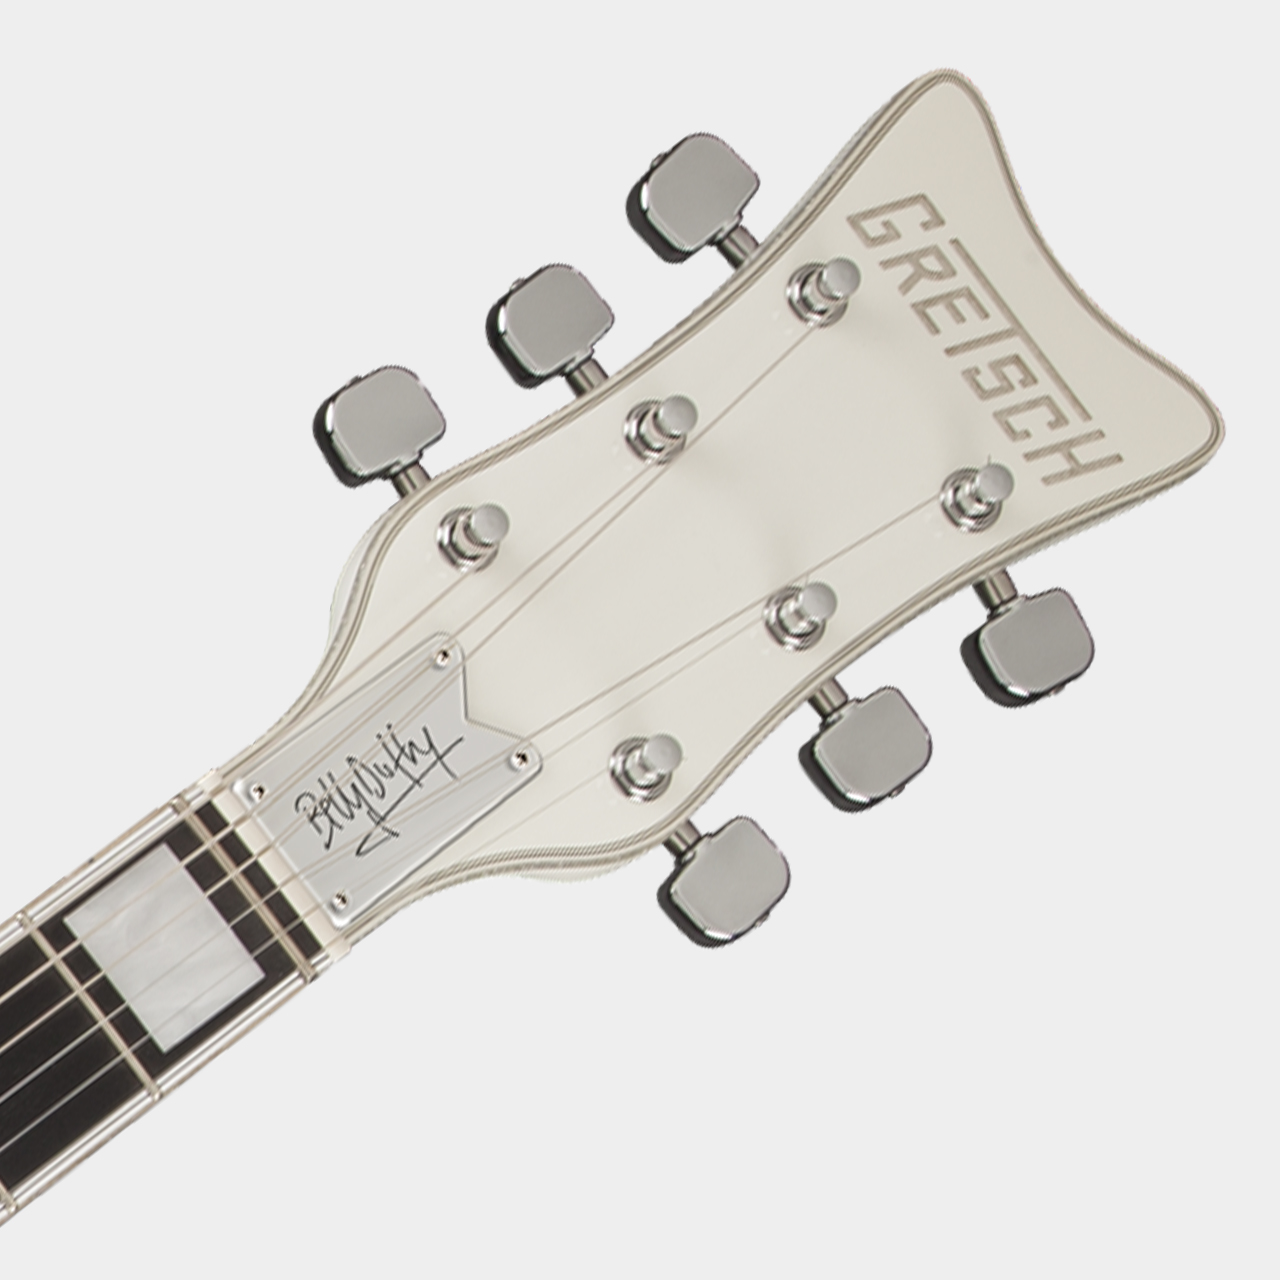 GRETSCH G7593T-BD Billy Duffy White Falcon Headstock Detail